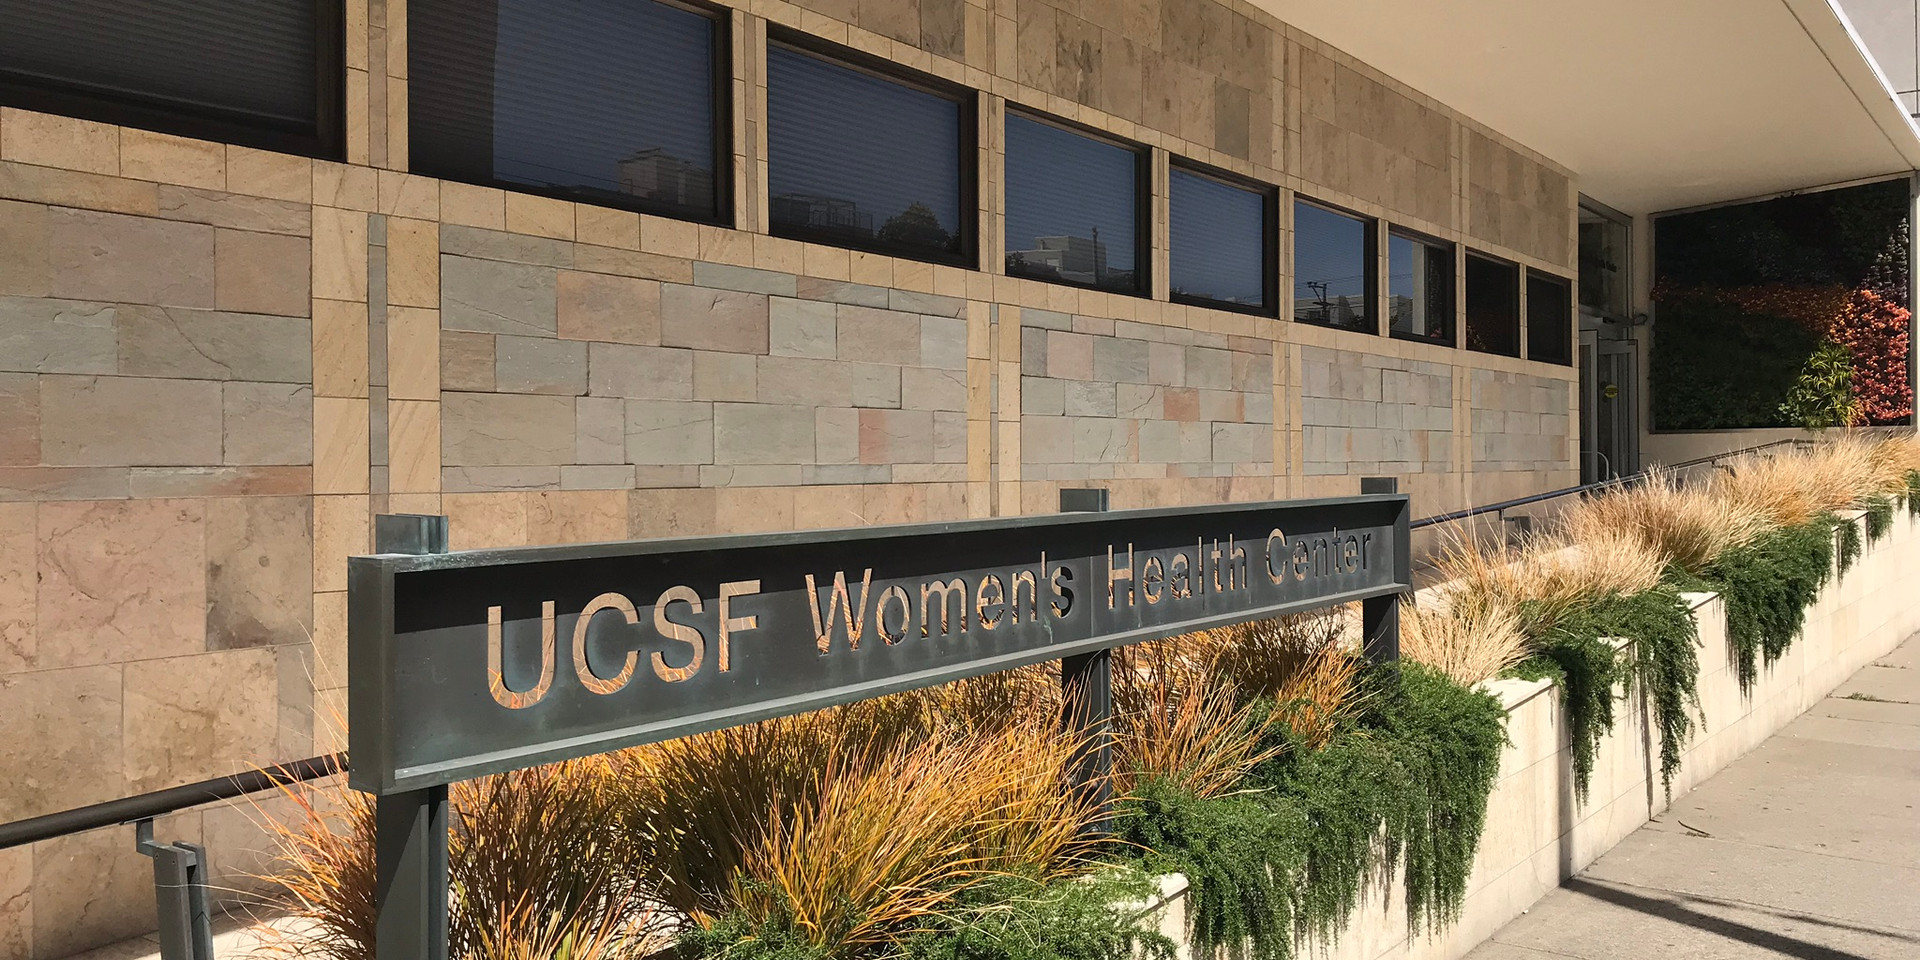 UCSF Women's Health Center